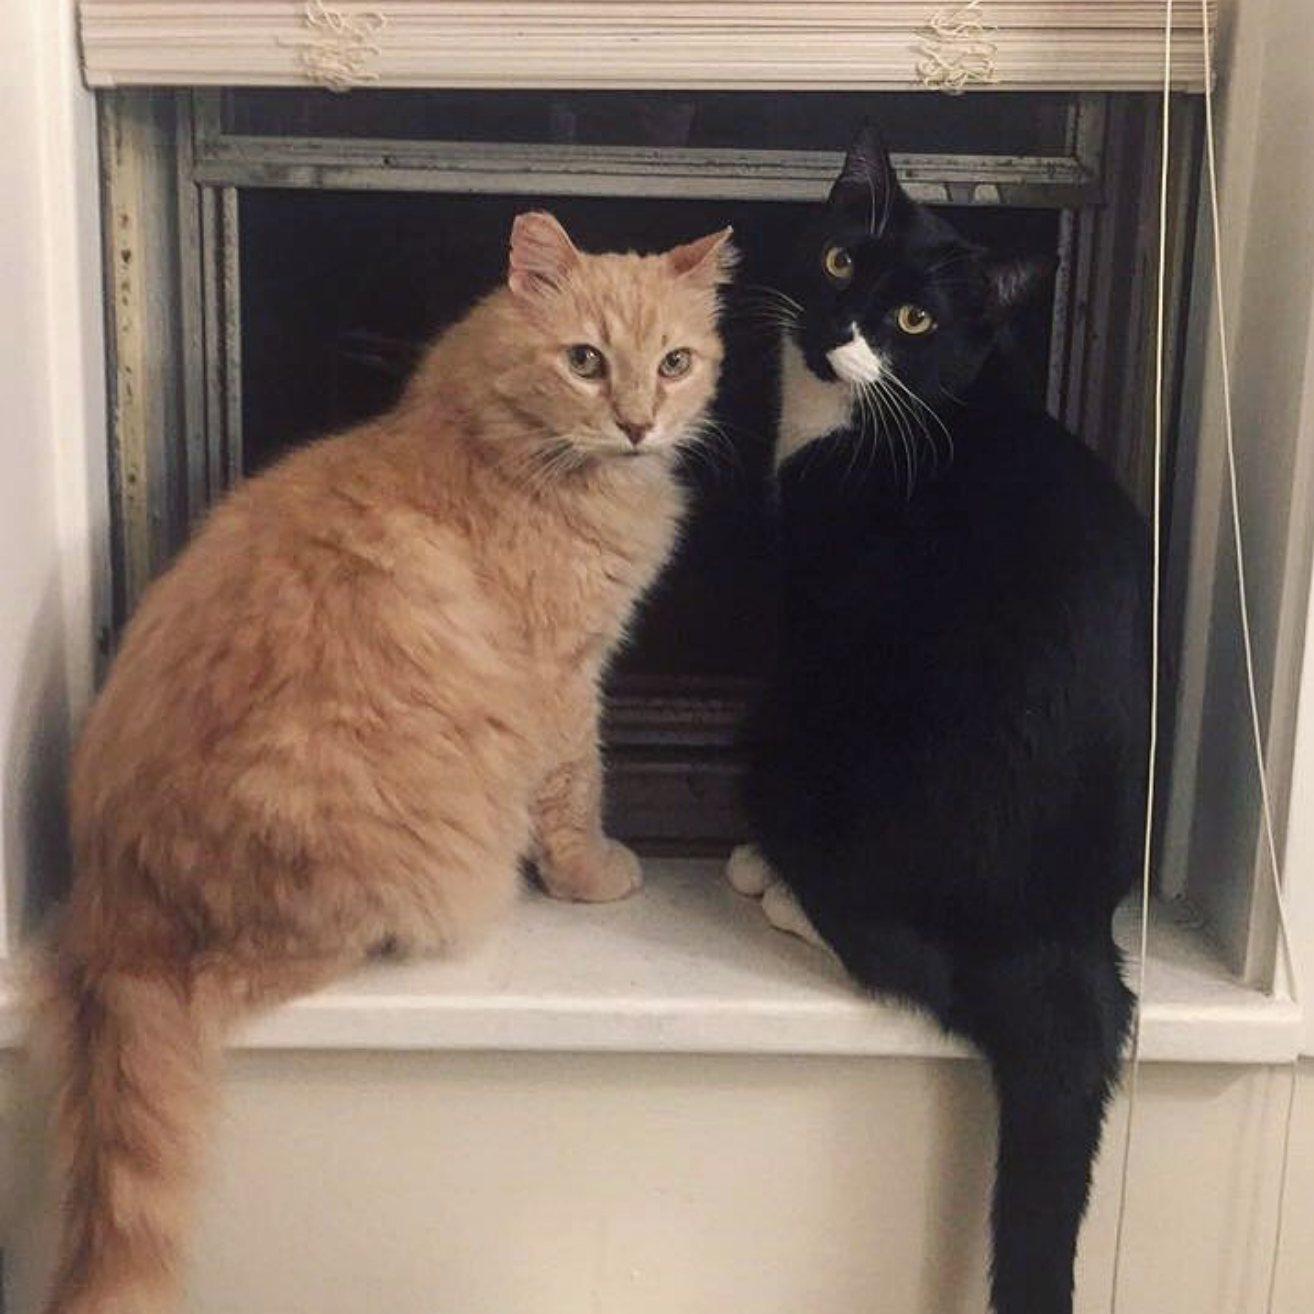 Crazy Cat Lady - Yes, yes I am. Meet Budders & Draven.